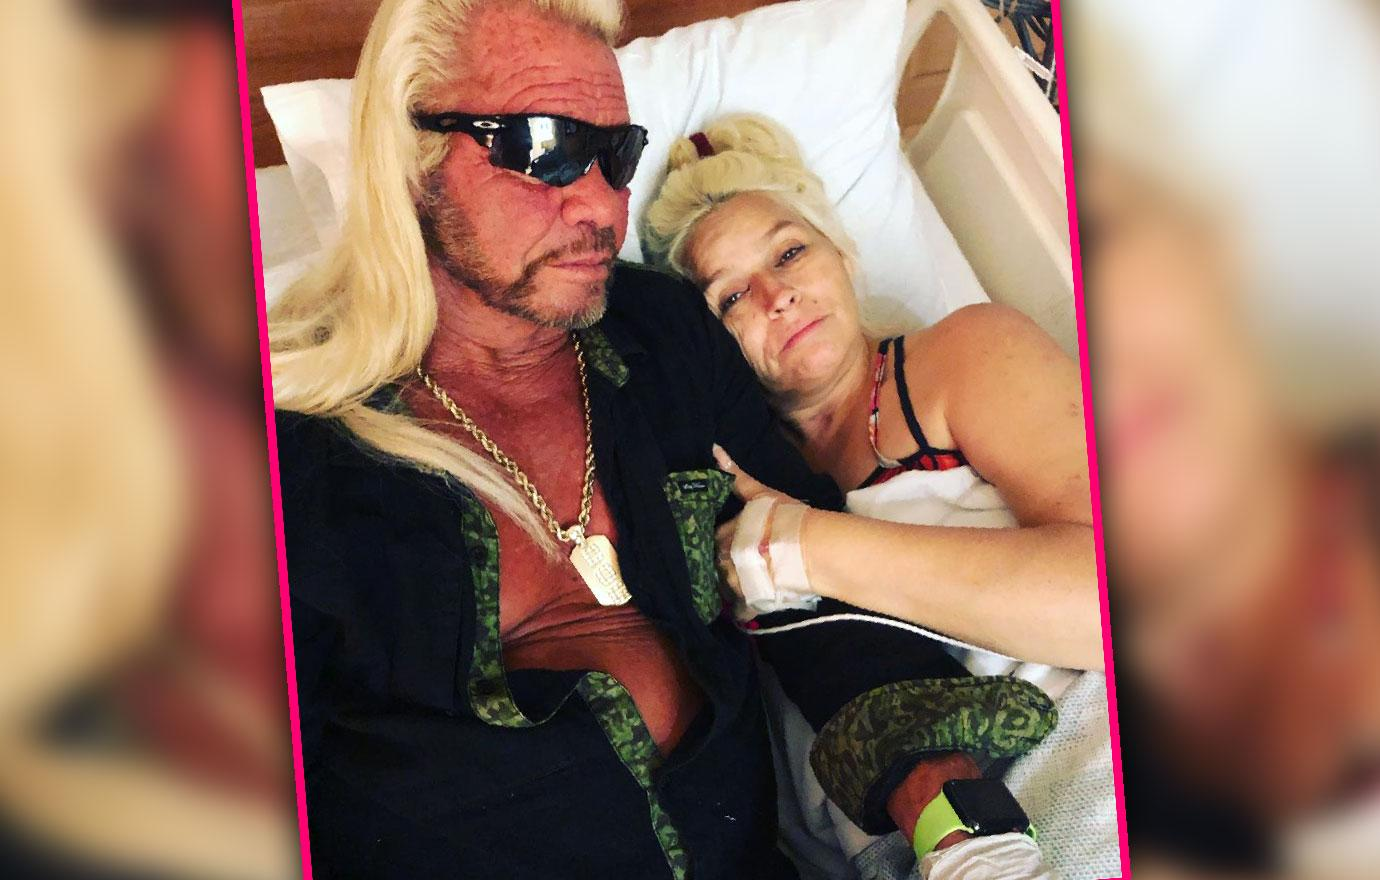 Dog The Bounty Hunter Star Beth Chapman Leaves Hospital Against Doctors Advice